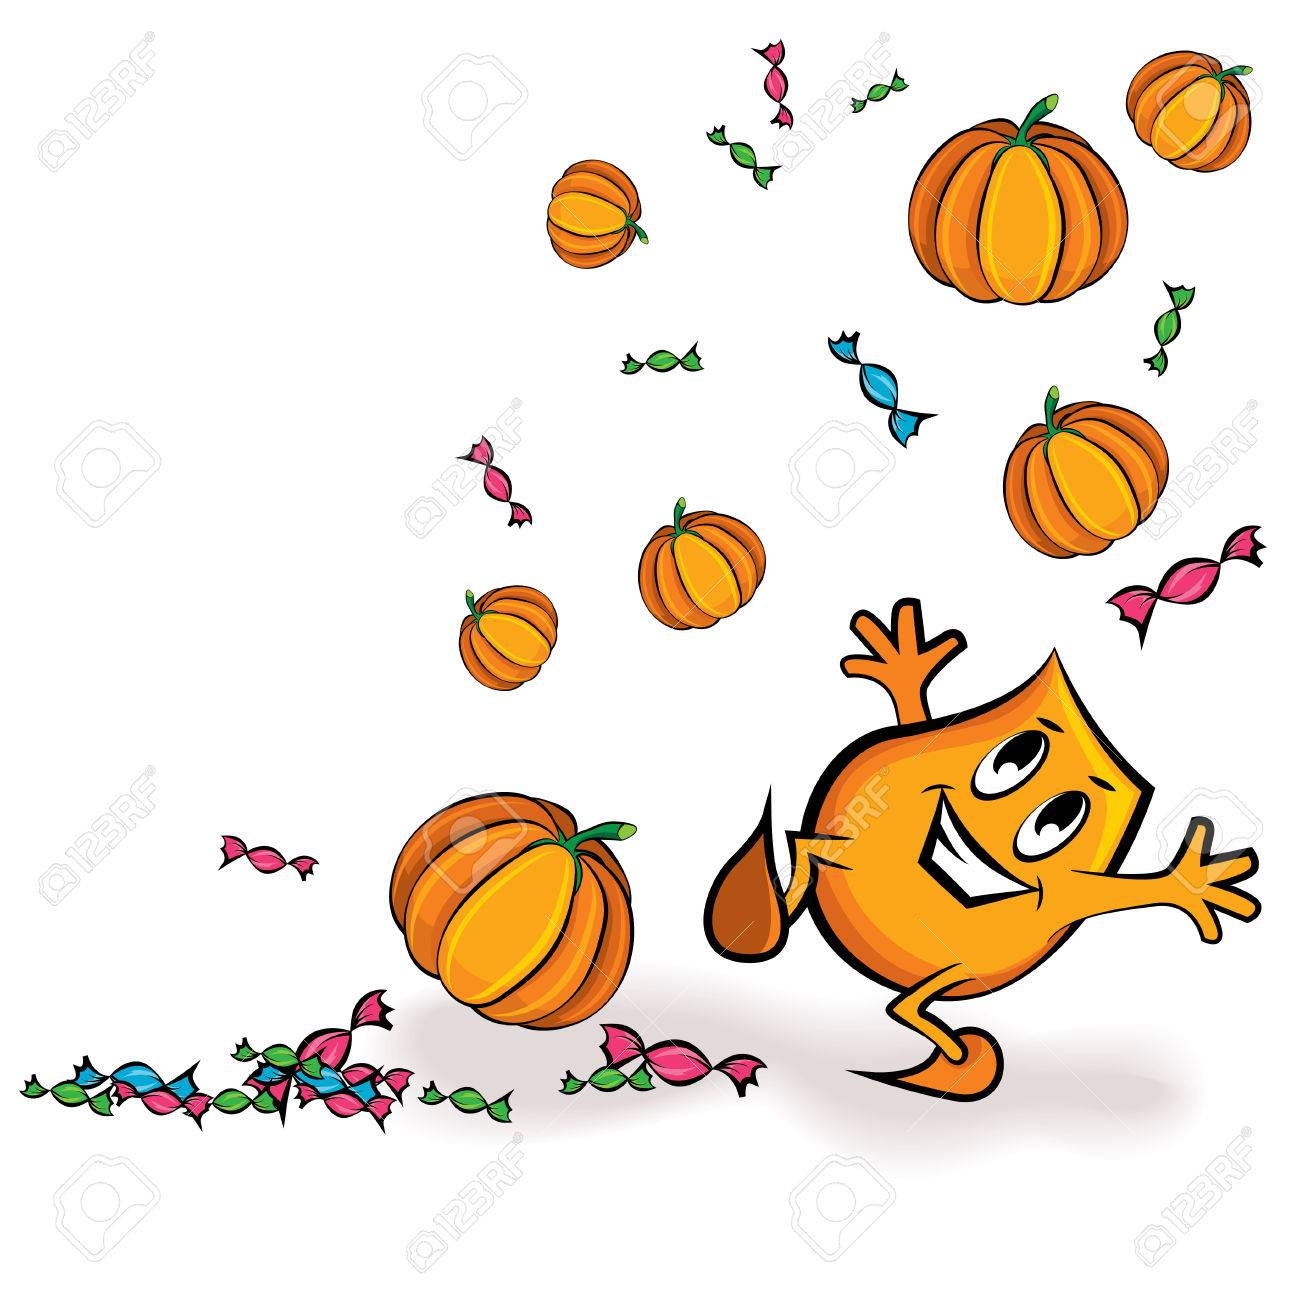 Cartoon character - Blinky - playing with treats and pumpkins,  illustration Stock Vector - 7675681